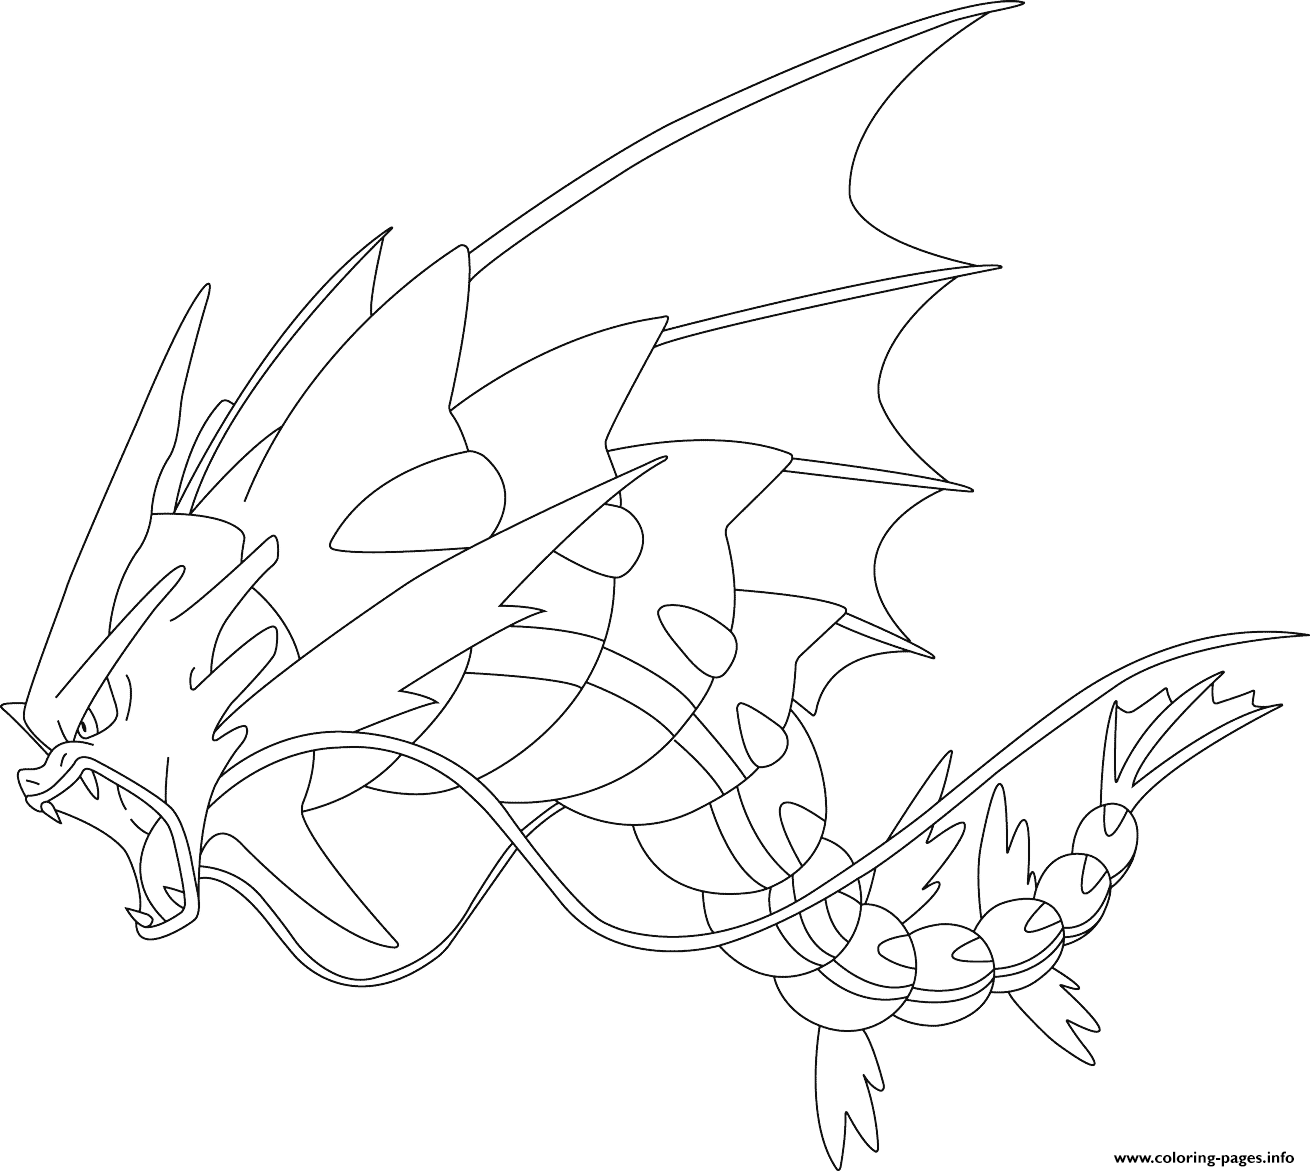 Mega Gyarados Pokemon coloring pages